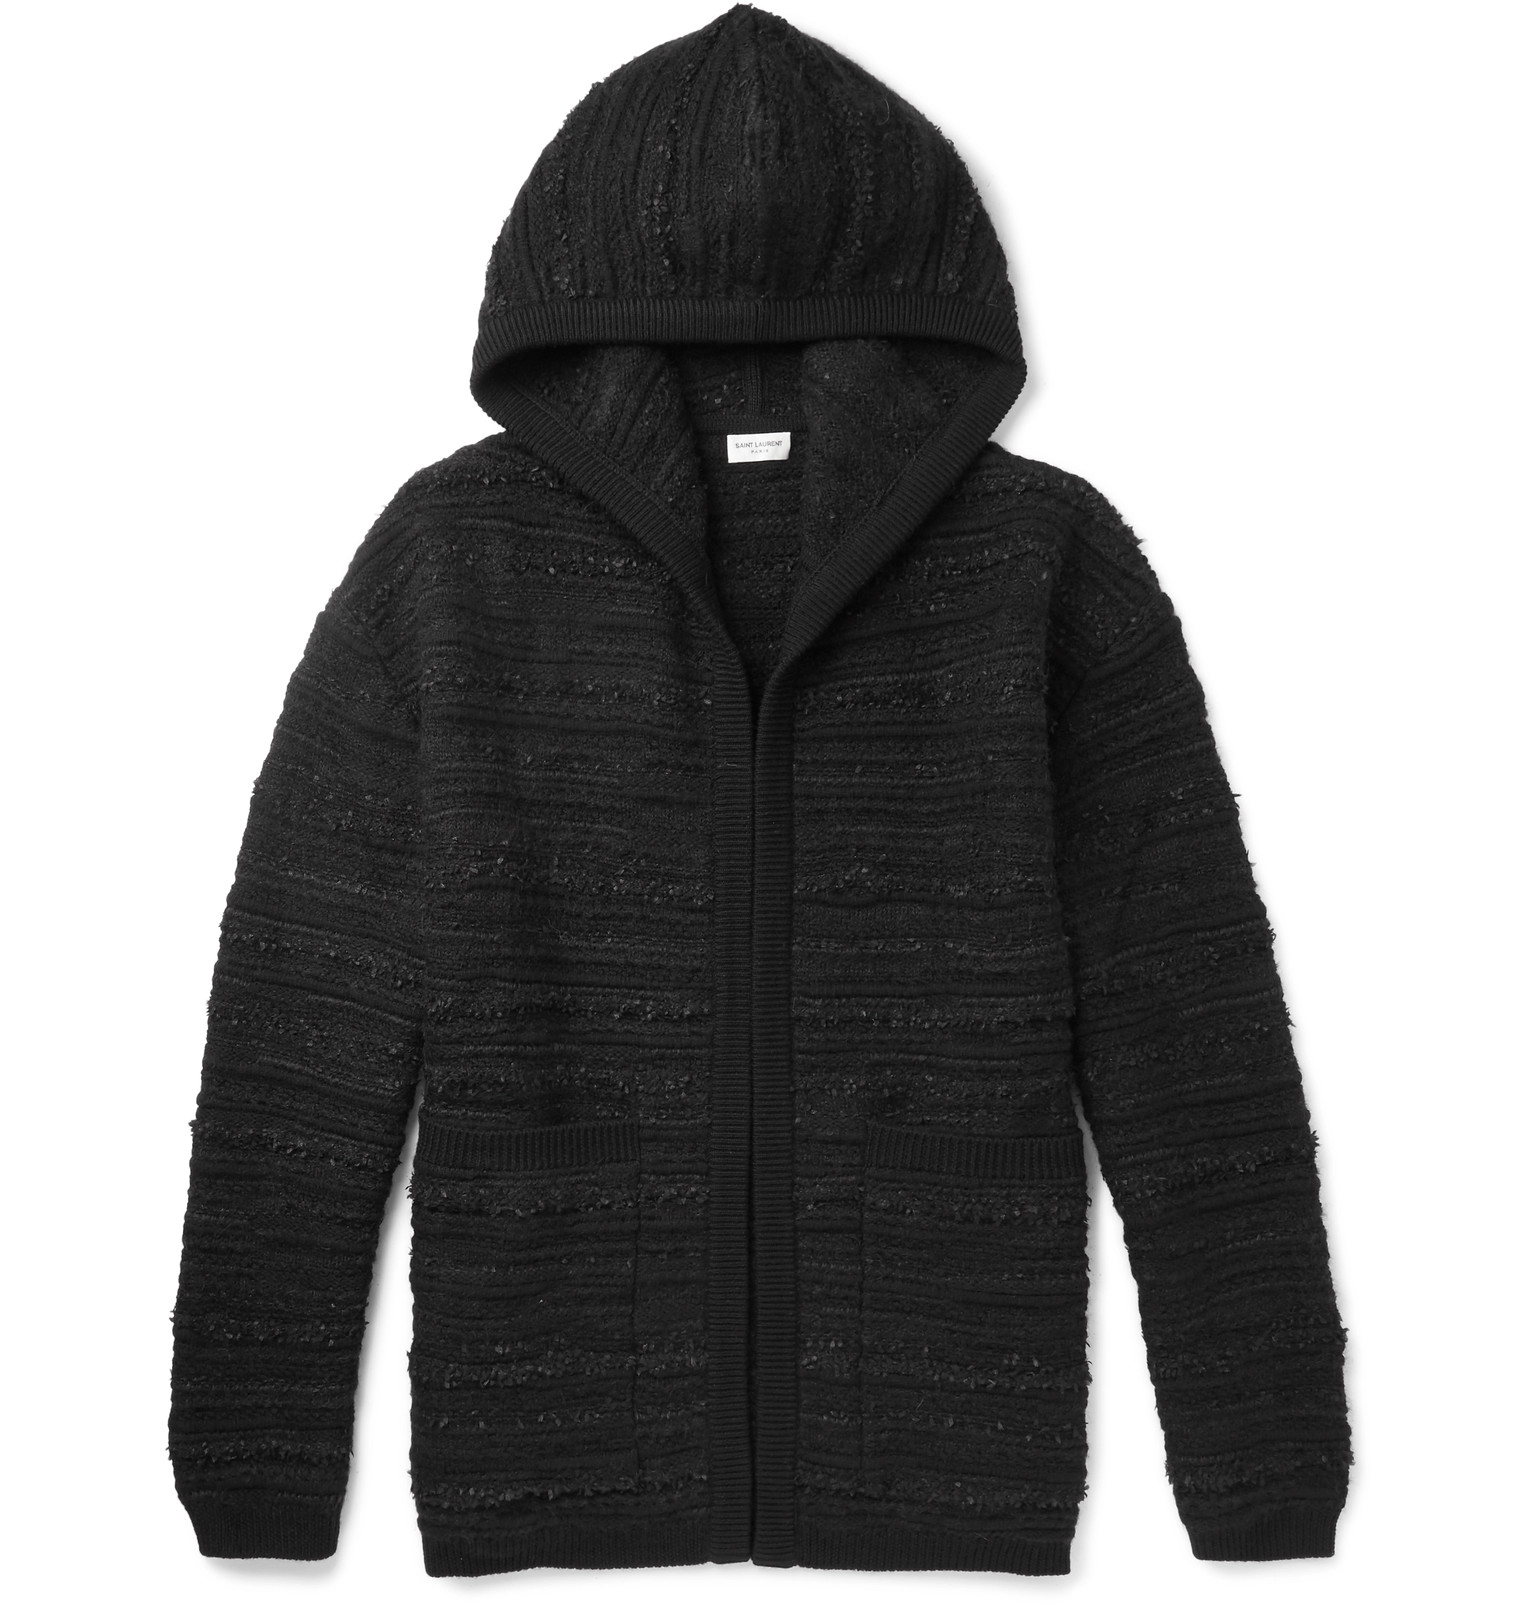 Black Saint Laurent Hoodie Wool blend Bouclé pWn6tI